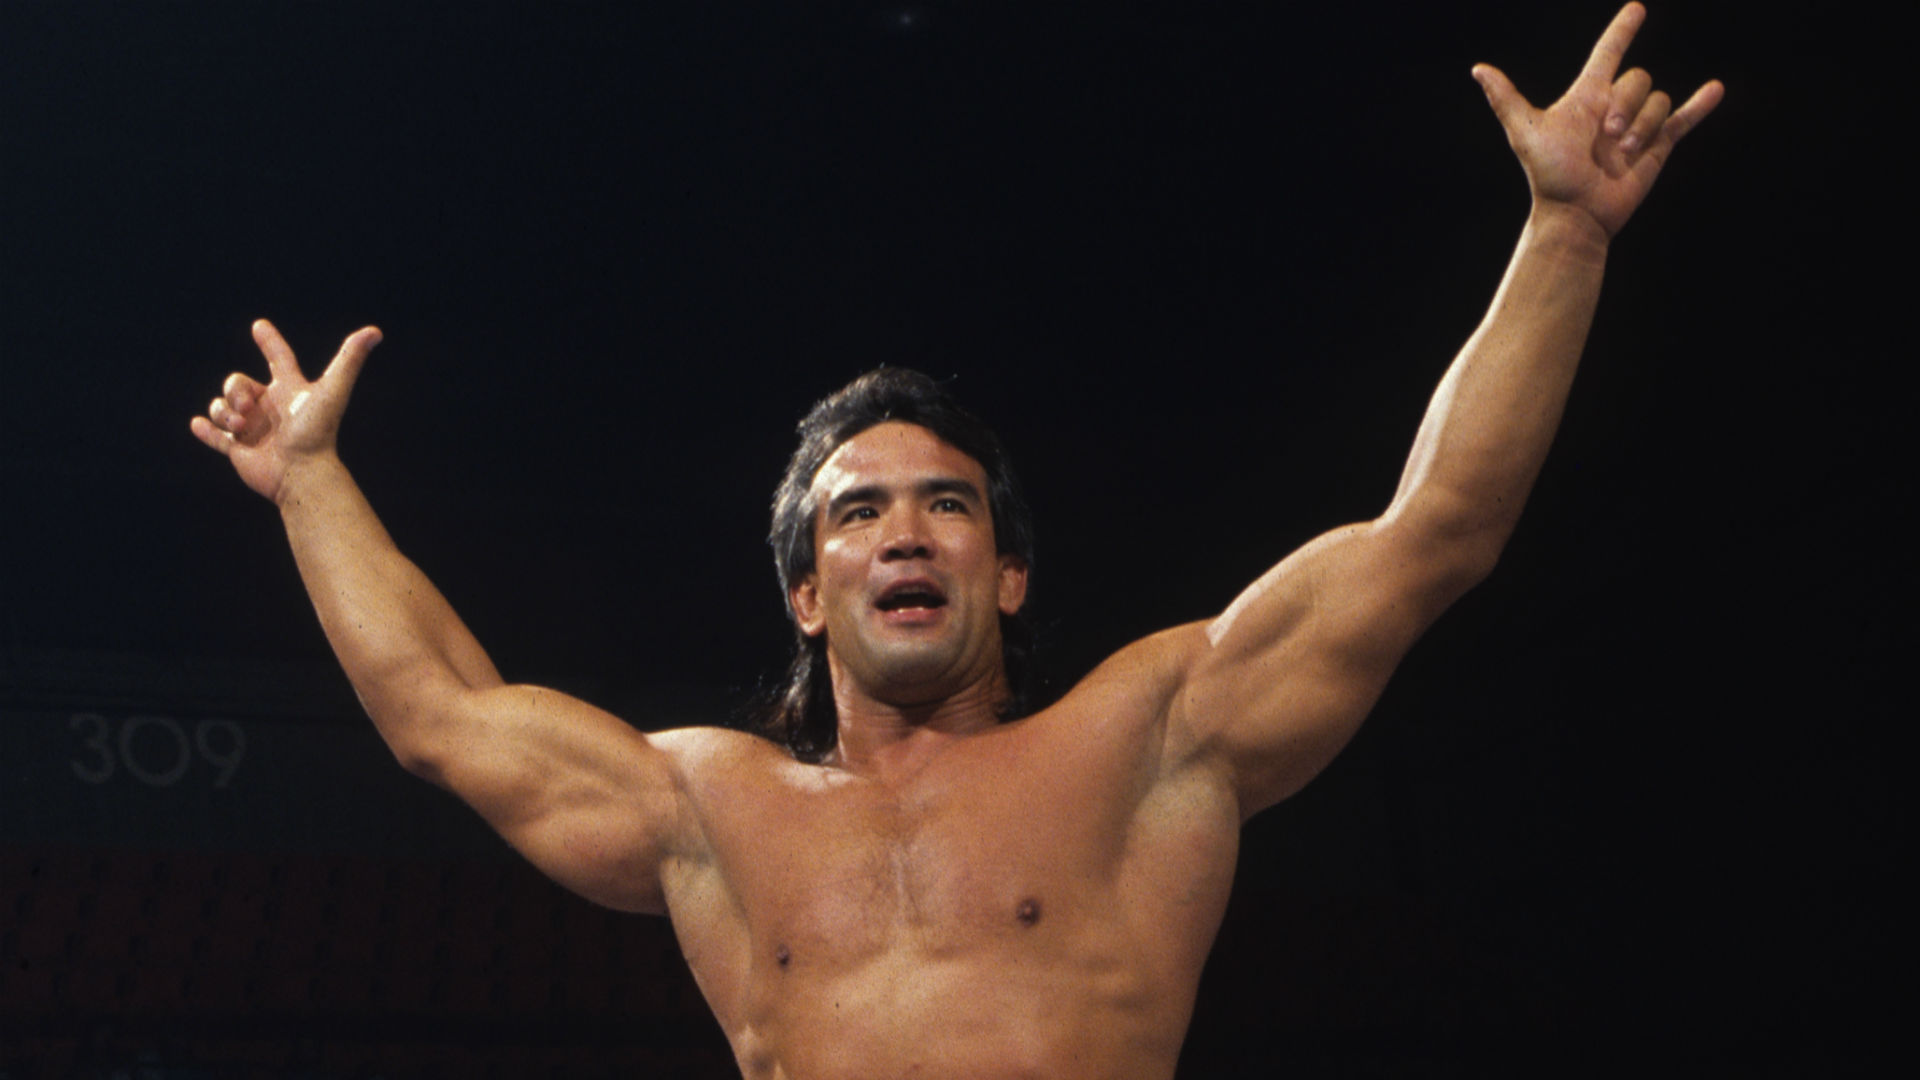 Ricky Steamboat on whether Edge vs. Randy Orton can have 'Greatest Match Ever,' working with Ric Flair and more